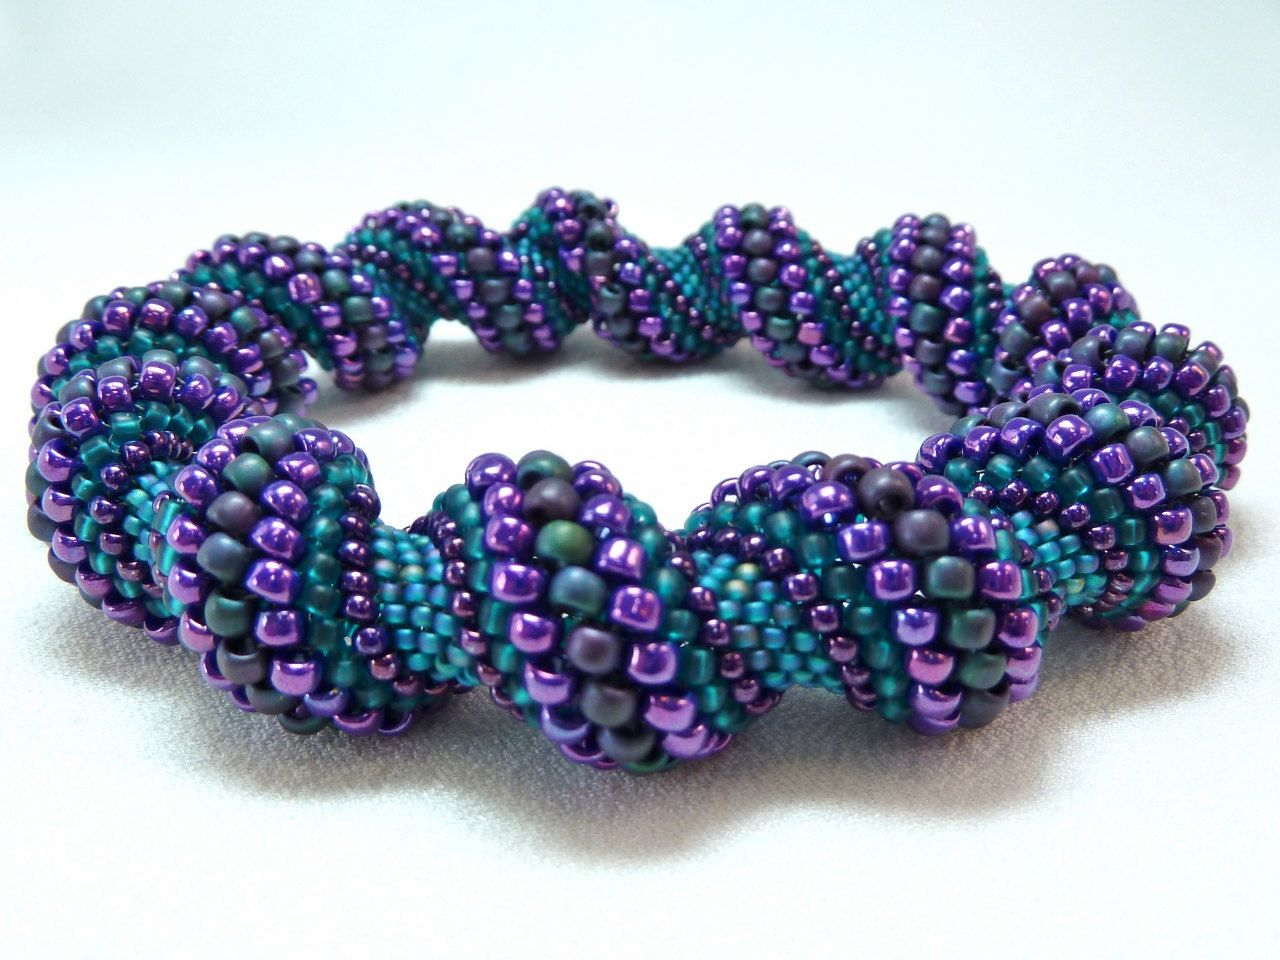 Items similar to Deepening Twilight Cellini Spiral Beadwoven Bangle Bracelet - The Twisted Collection on Etsy